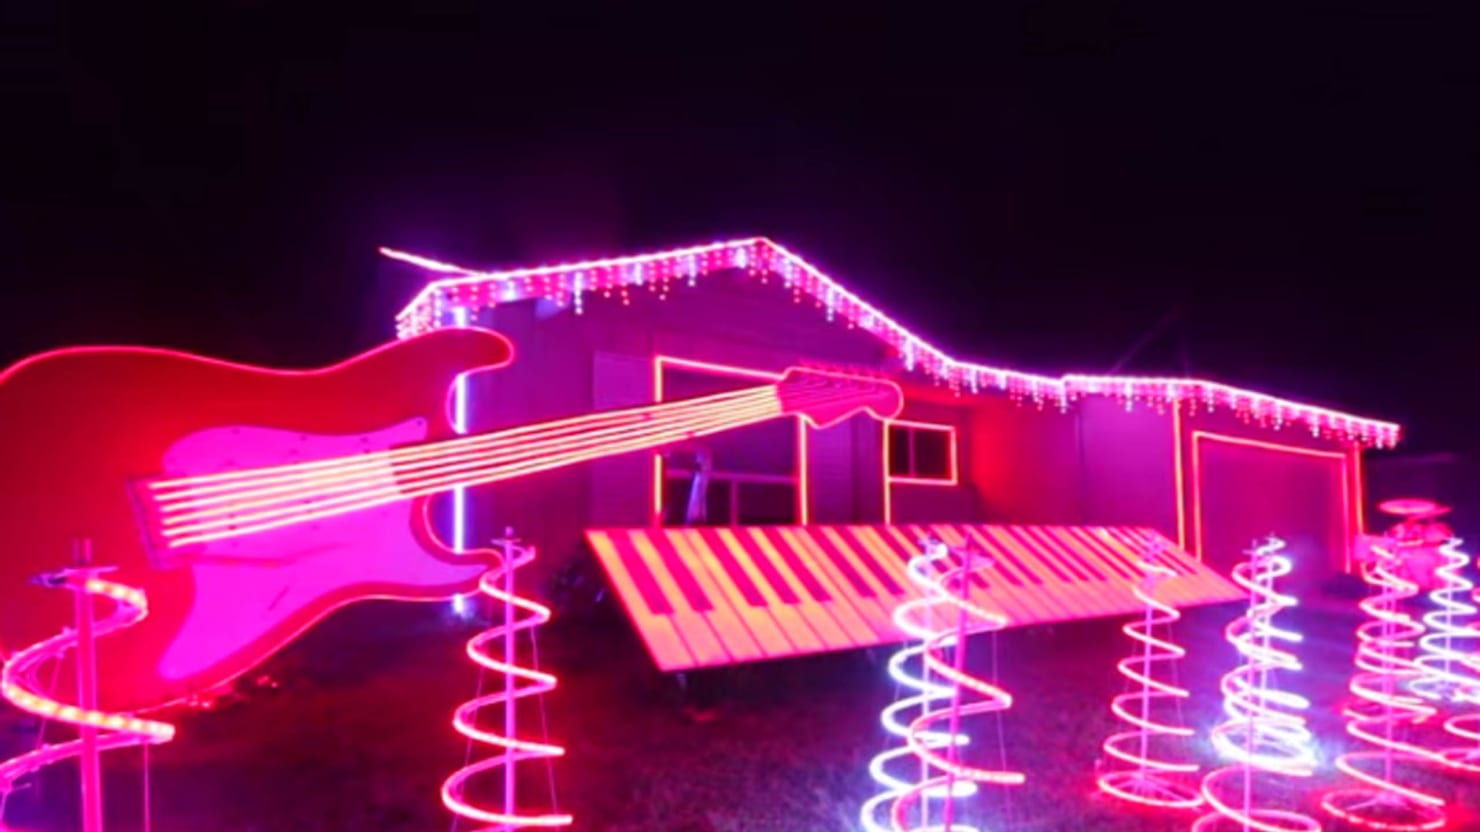 Star Wars Christmas Lights, Unedited Footage of a Bear, and More ...